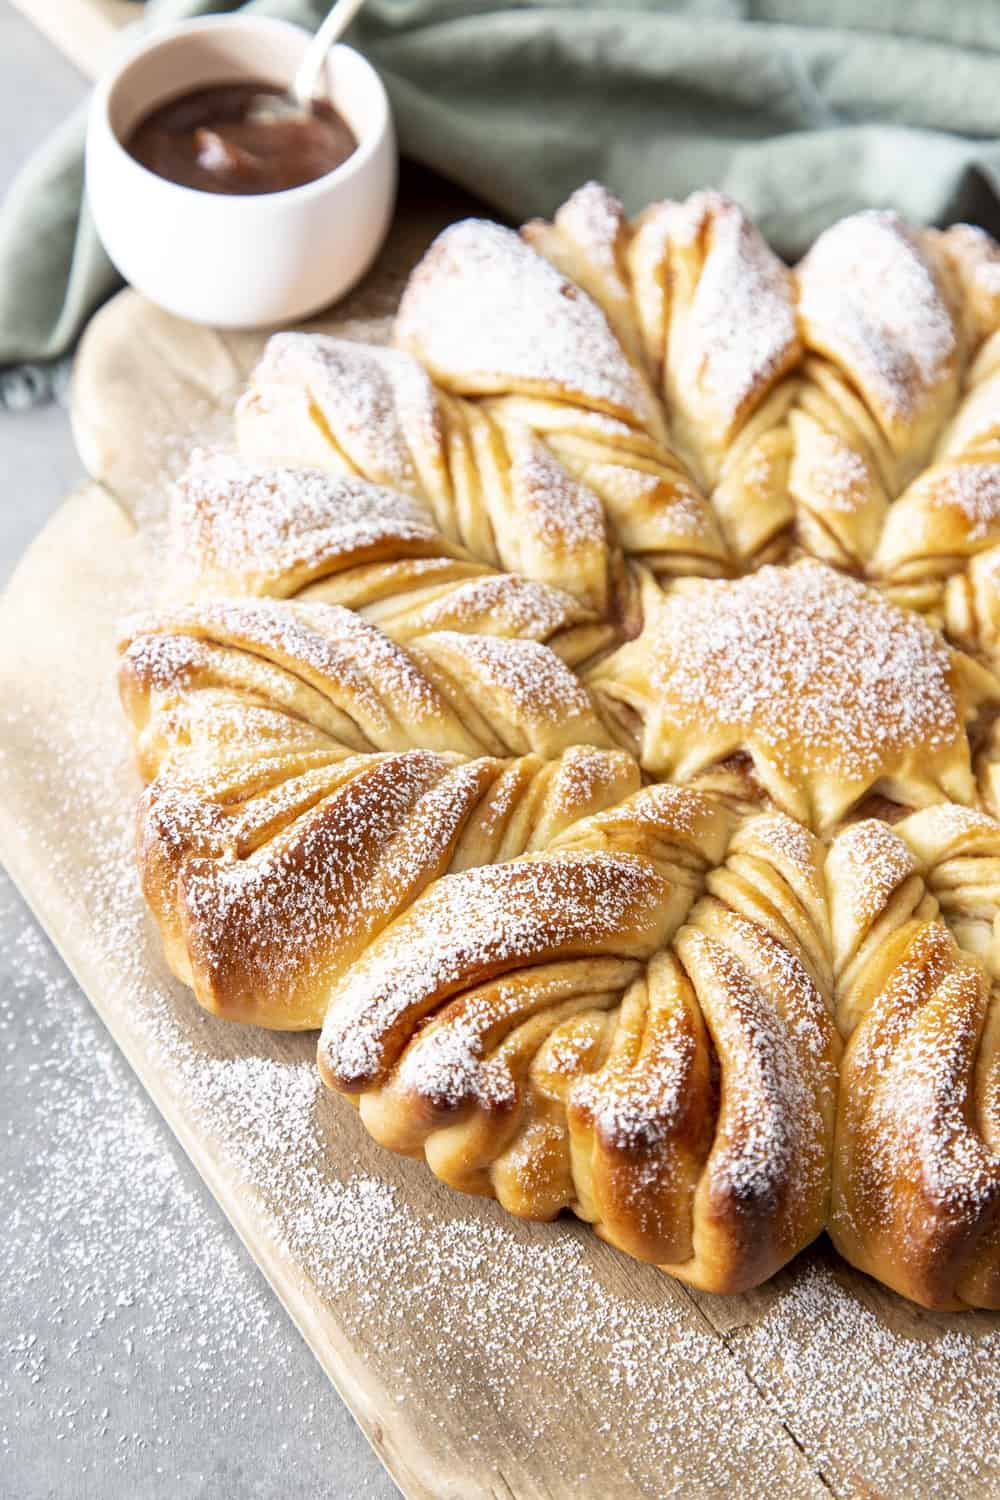 Star bread on serving bread and dusted with powdered sugar.